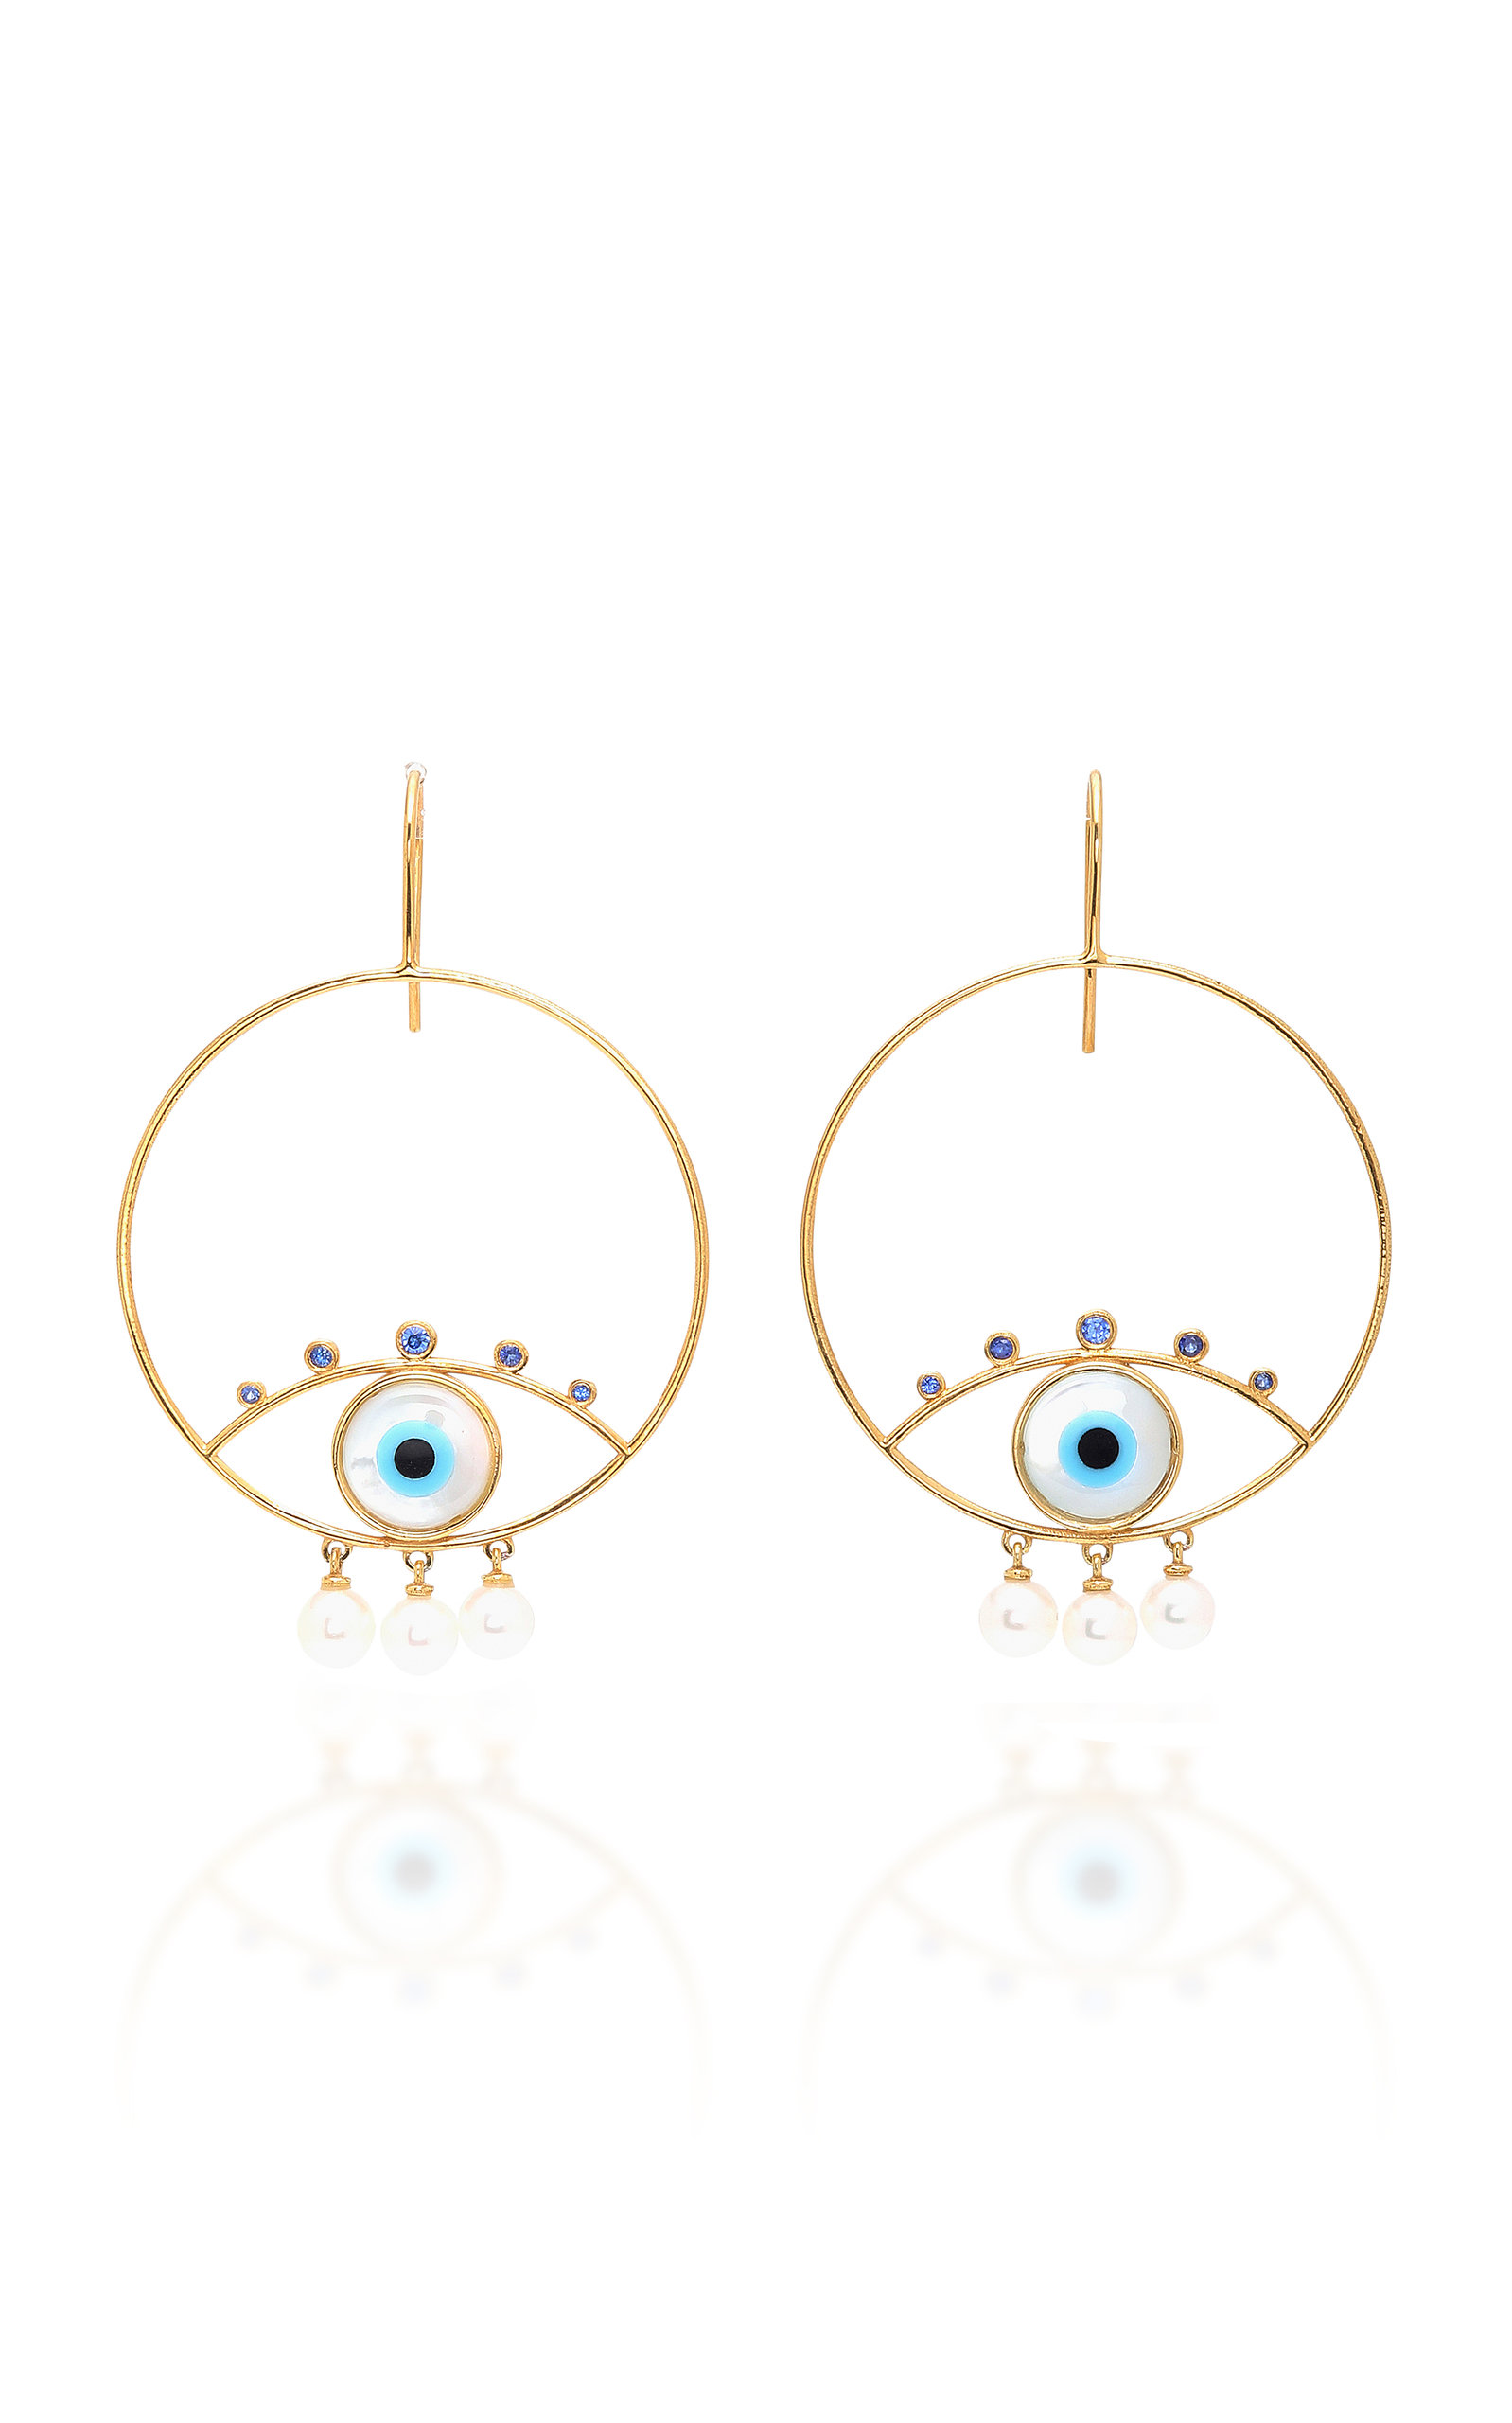 MARIANNA GOULANDRIS PEARLY EYES GOLD VERMEIL SAPPHIRE AND PEARL EARRINGS